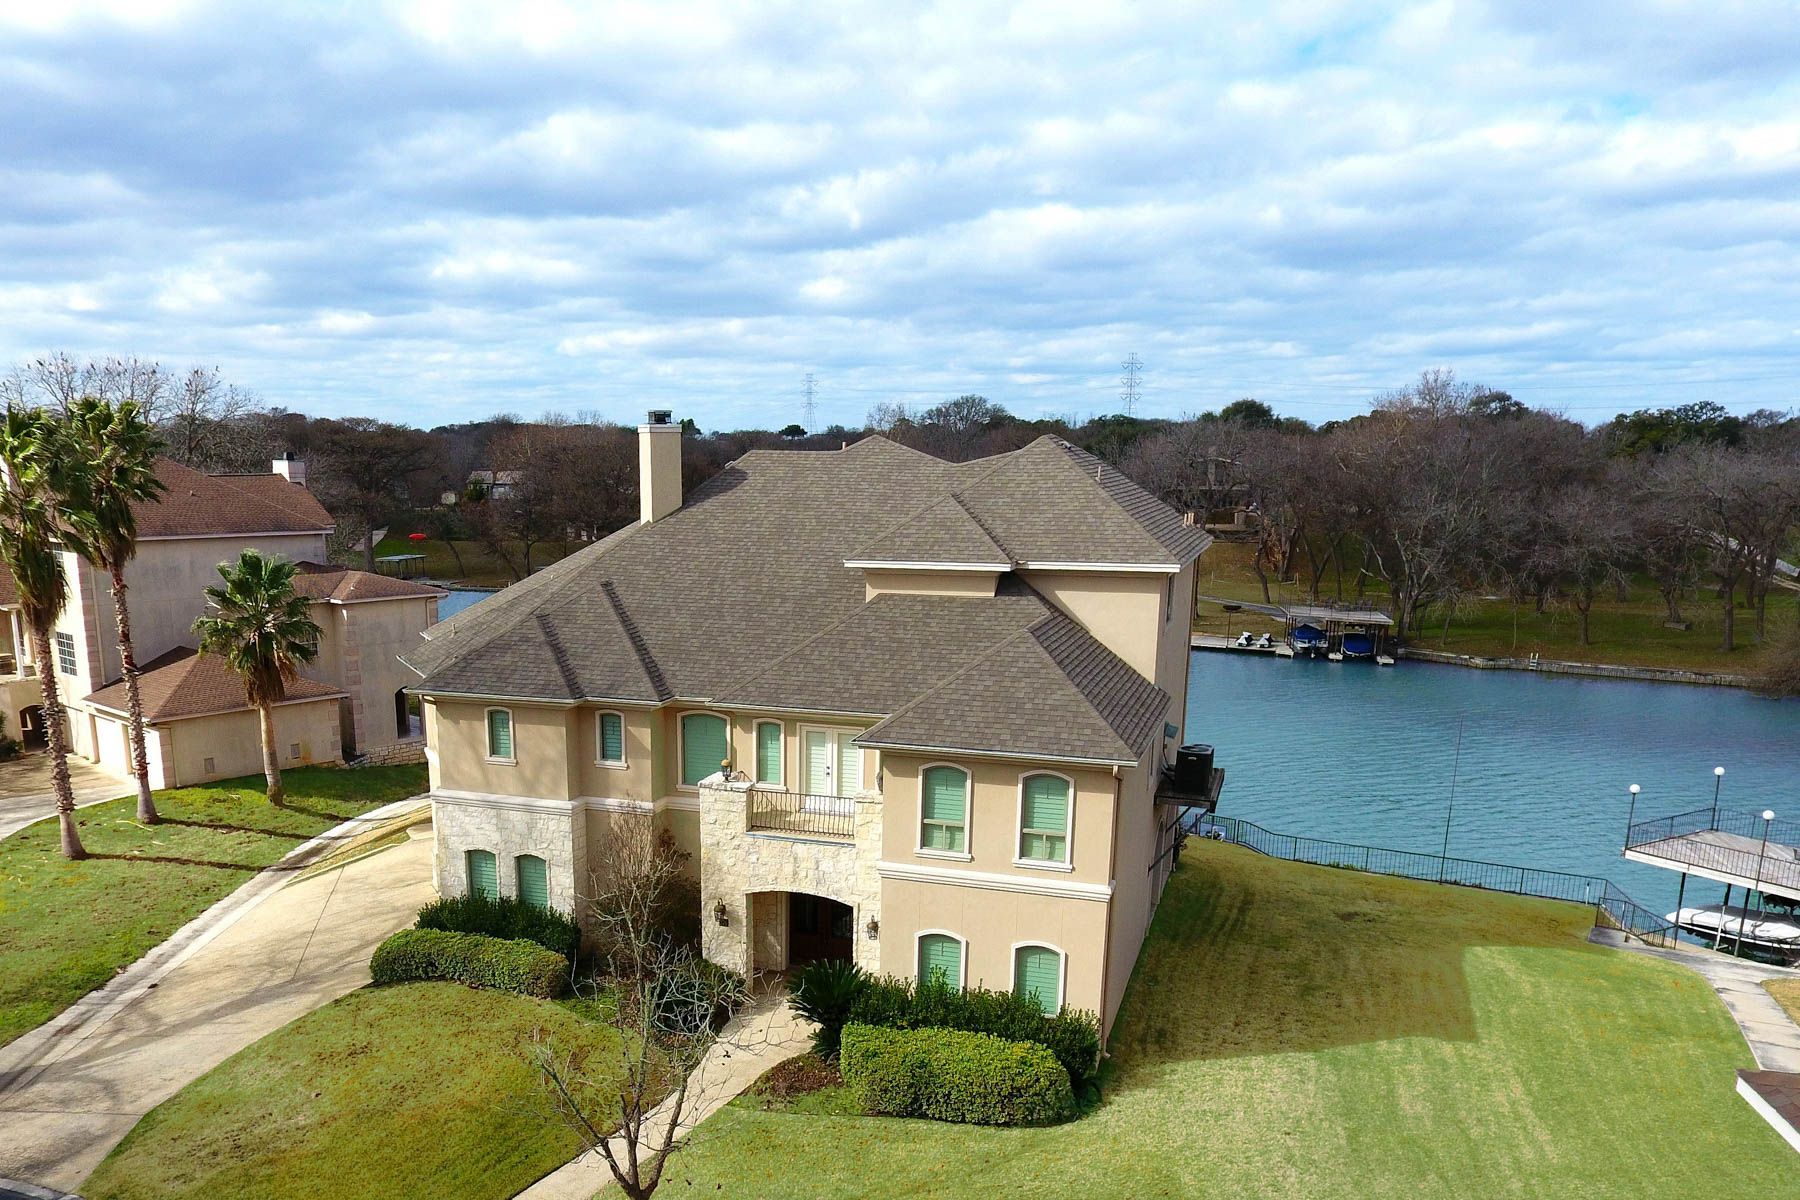 Casa Unifamiliar por un Venta en Breathtaking Waterfront Home on Lake McQueeney 326 Las Hadas Seguin, Texas 78155 Estados Unidos